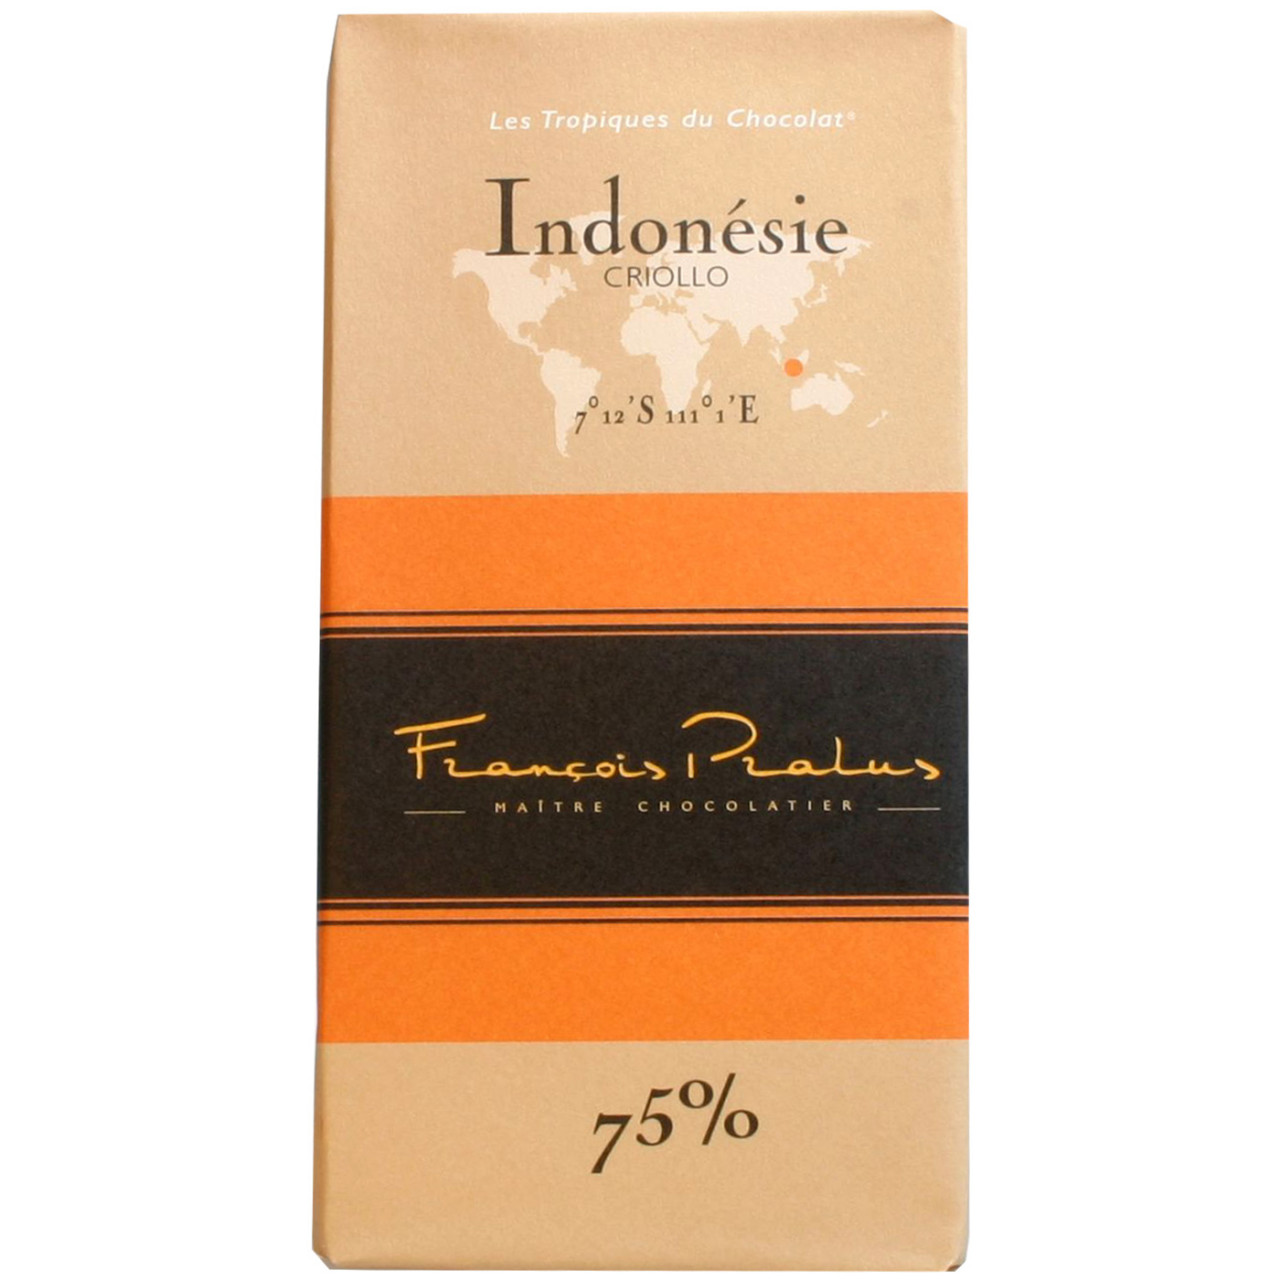 Dunkle Schokolade 75%, Indonesien Criollo, dark chocolate, chocolat noir, bean to bar,